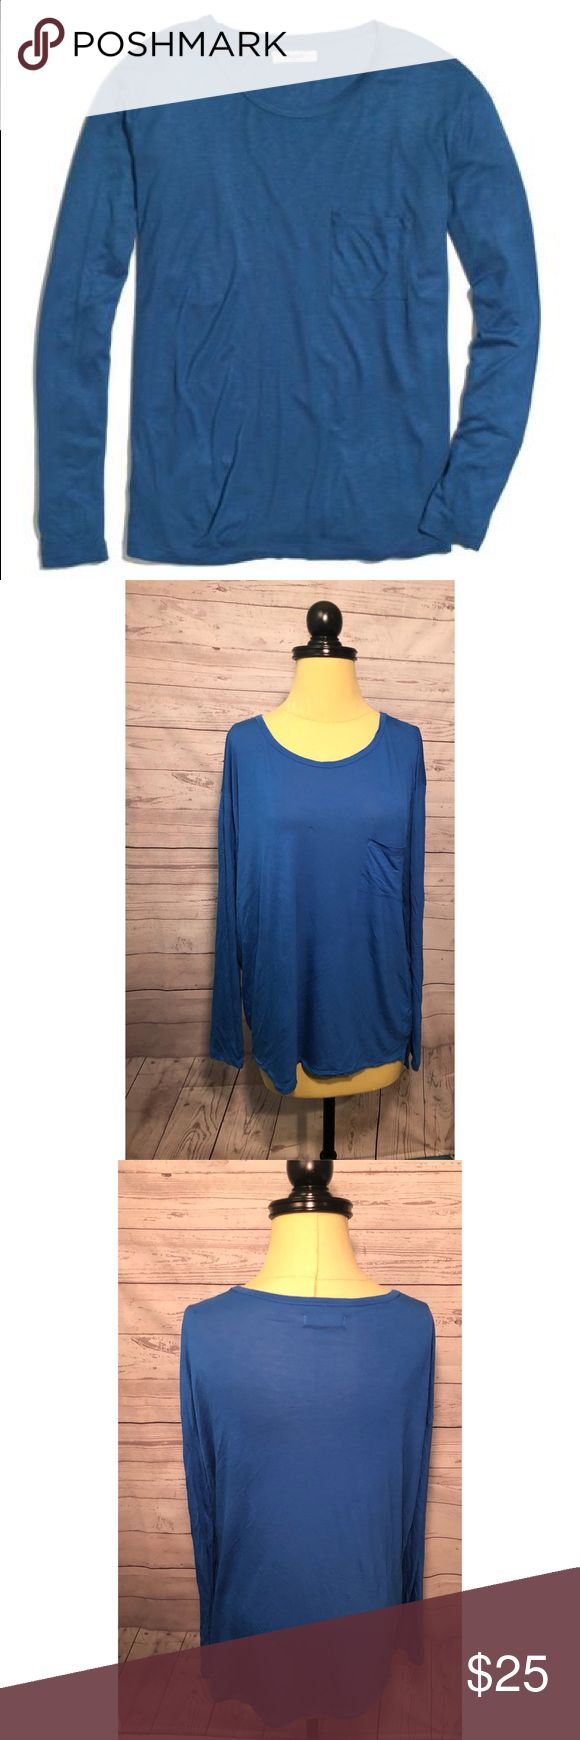 Madewell Blue Longsleeve Drape Tee This blue longsleeve drape Tee is 100% viscose, meaning it basically feels like wearing pajamas. Amazingly soft. Gorgeous blue color. Worn once or twice. Size XL. ✨ Feel free to ask any questions. No trades or outside transactions. Offers welcomed. Bundle to save more! Madewell Tops Tees - Long Sleeve